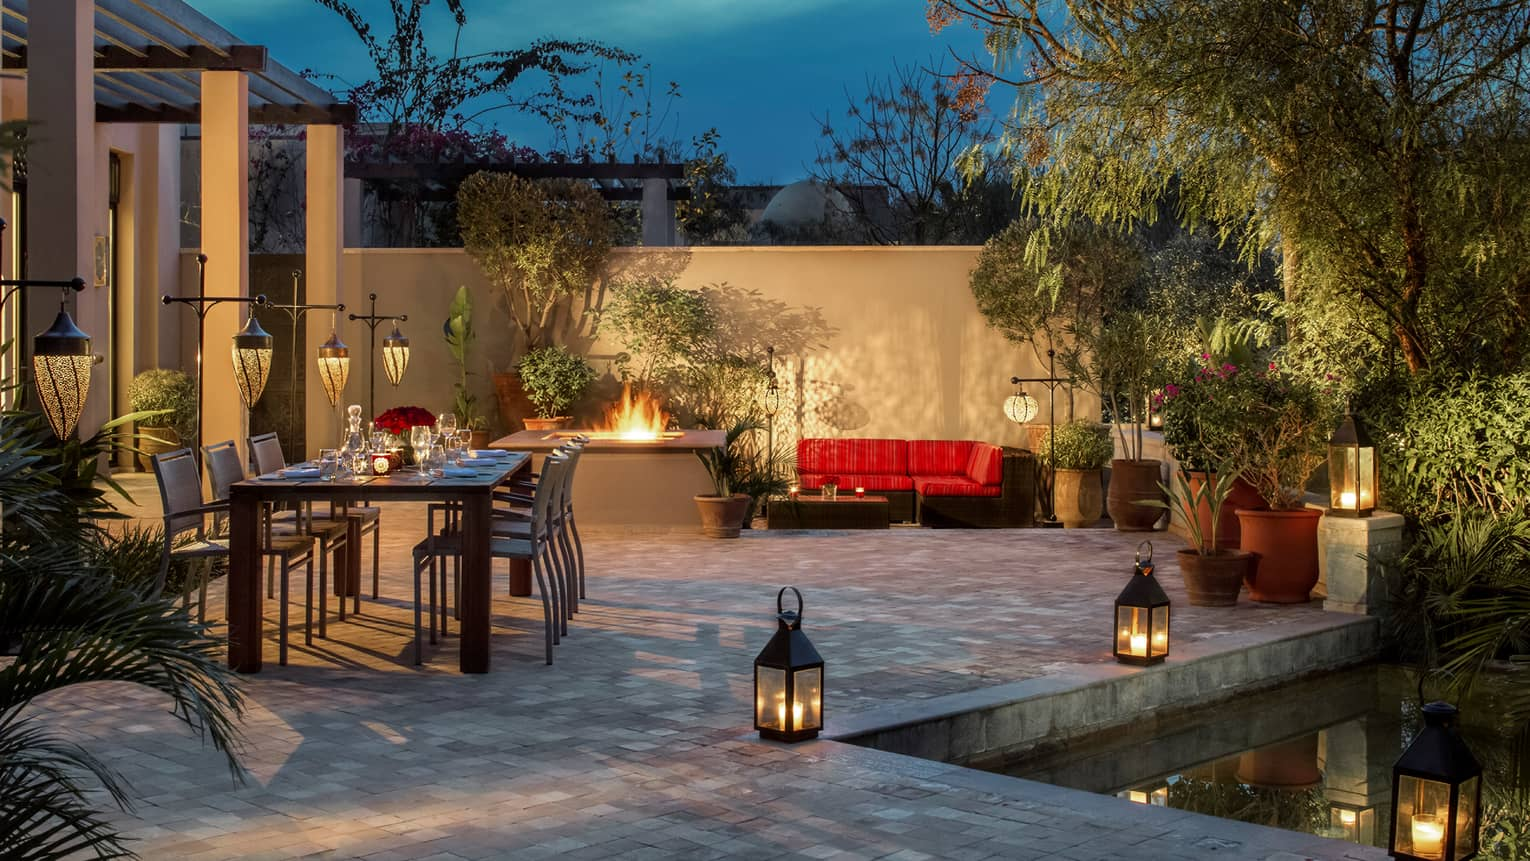 Two-bedroom villa patio with long candle-lit private dining table, outdoor fireplace, lanterns along pool